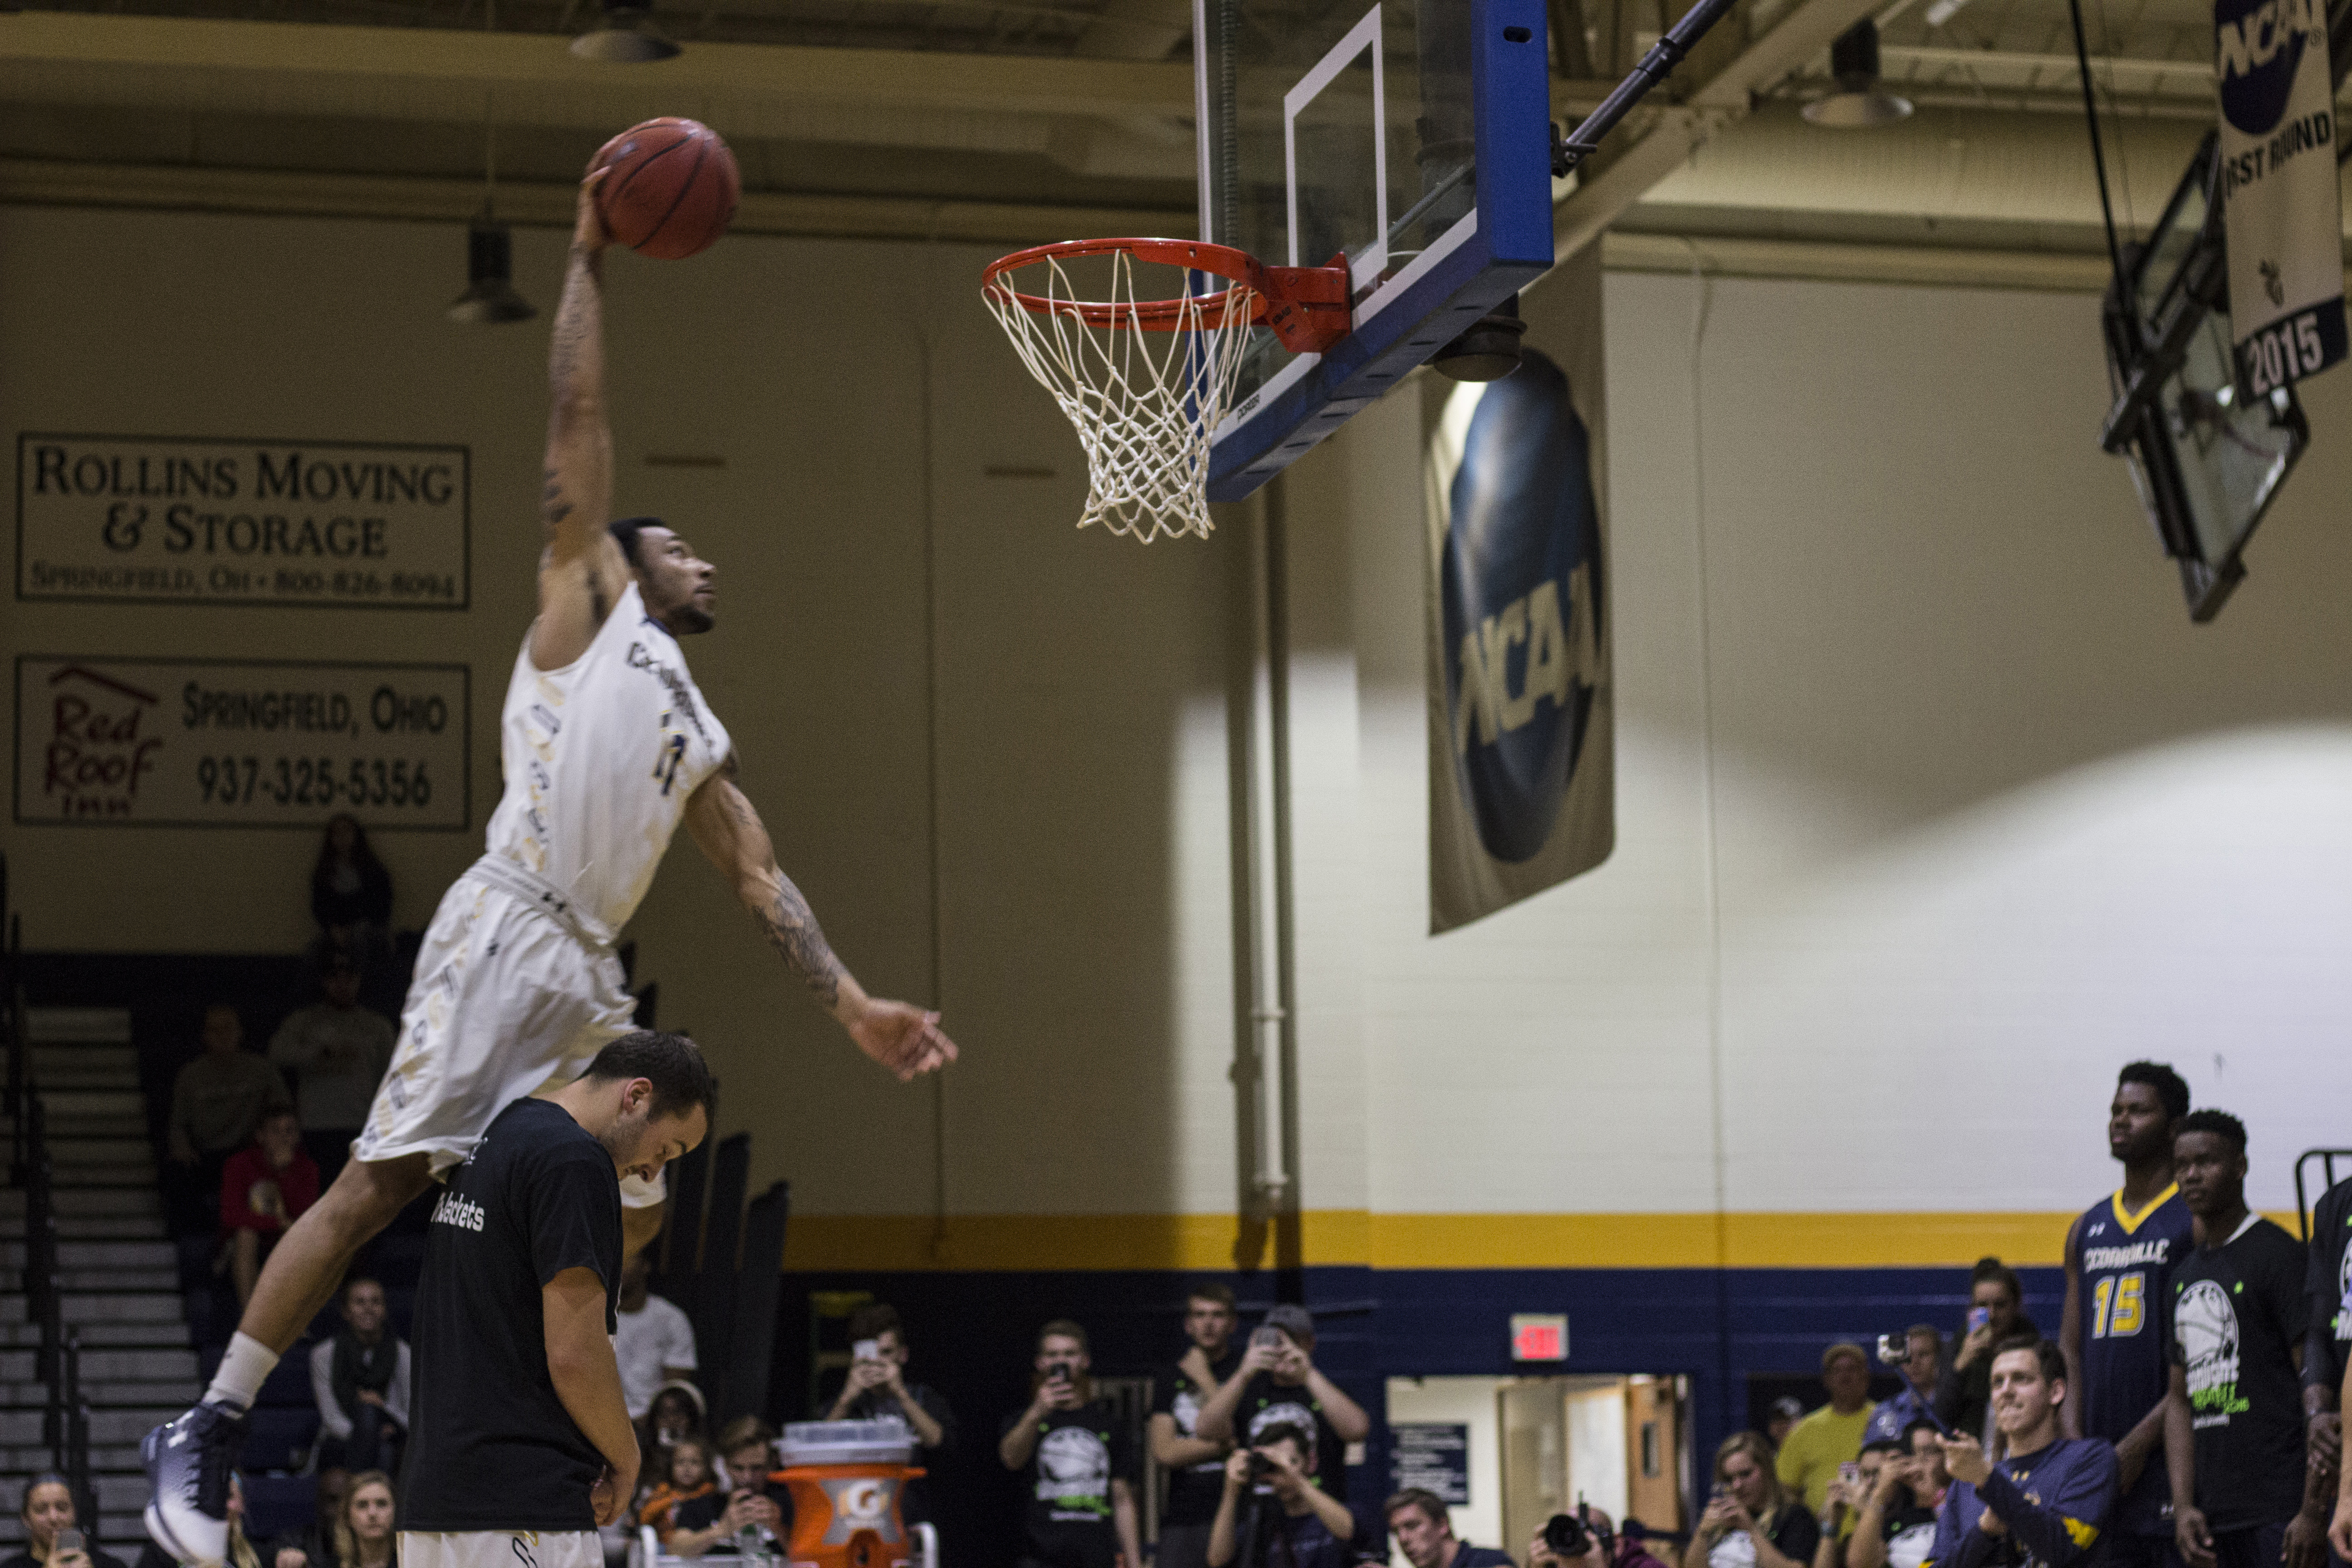 Junior Dazhonetae (Tae) Bennett performs the final dunk, an impressive slam dunk while jumping over a partner, bringing the night to a close.